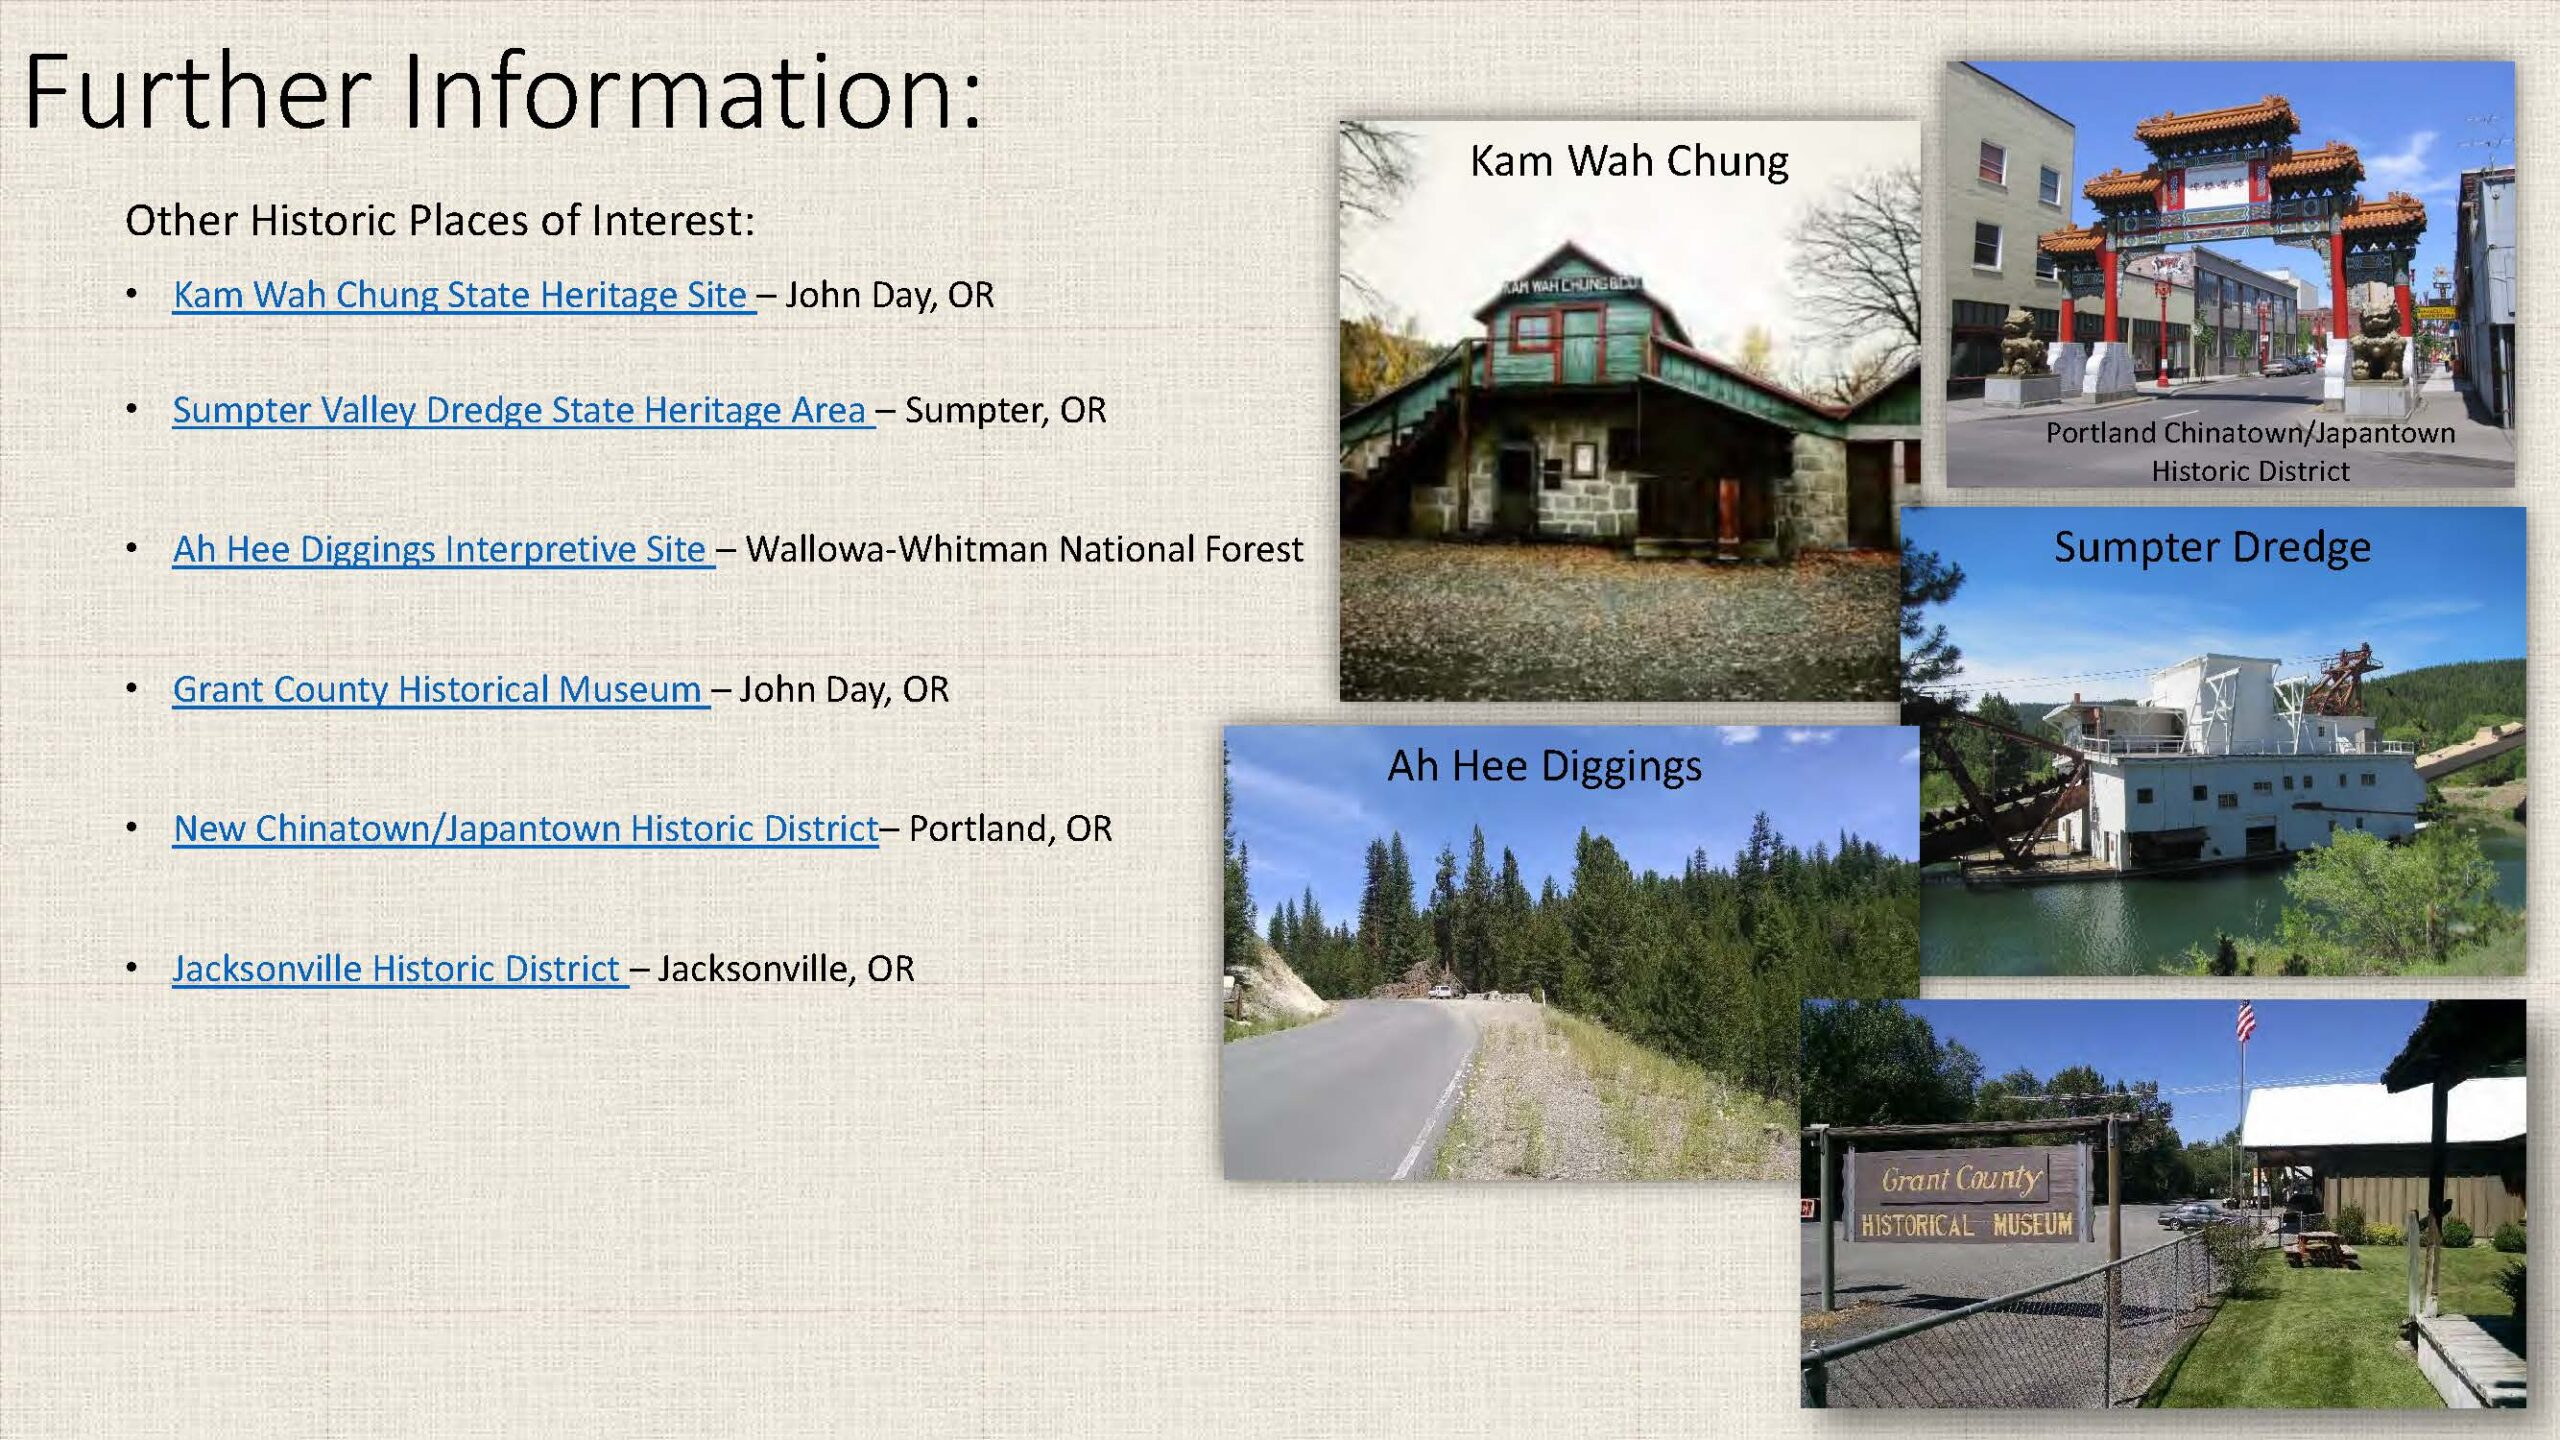 Further Information and Other Historic Places of Interest